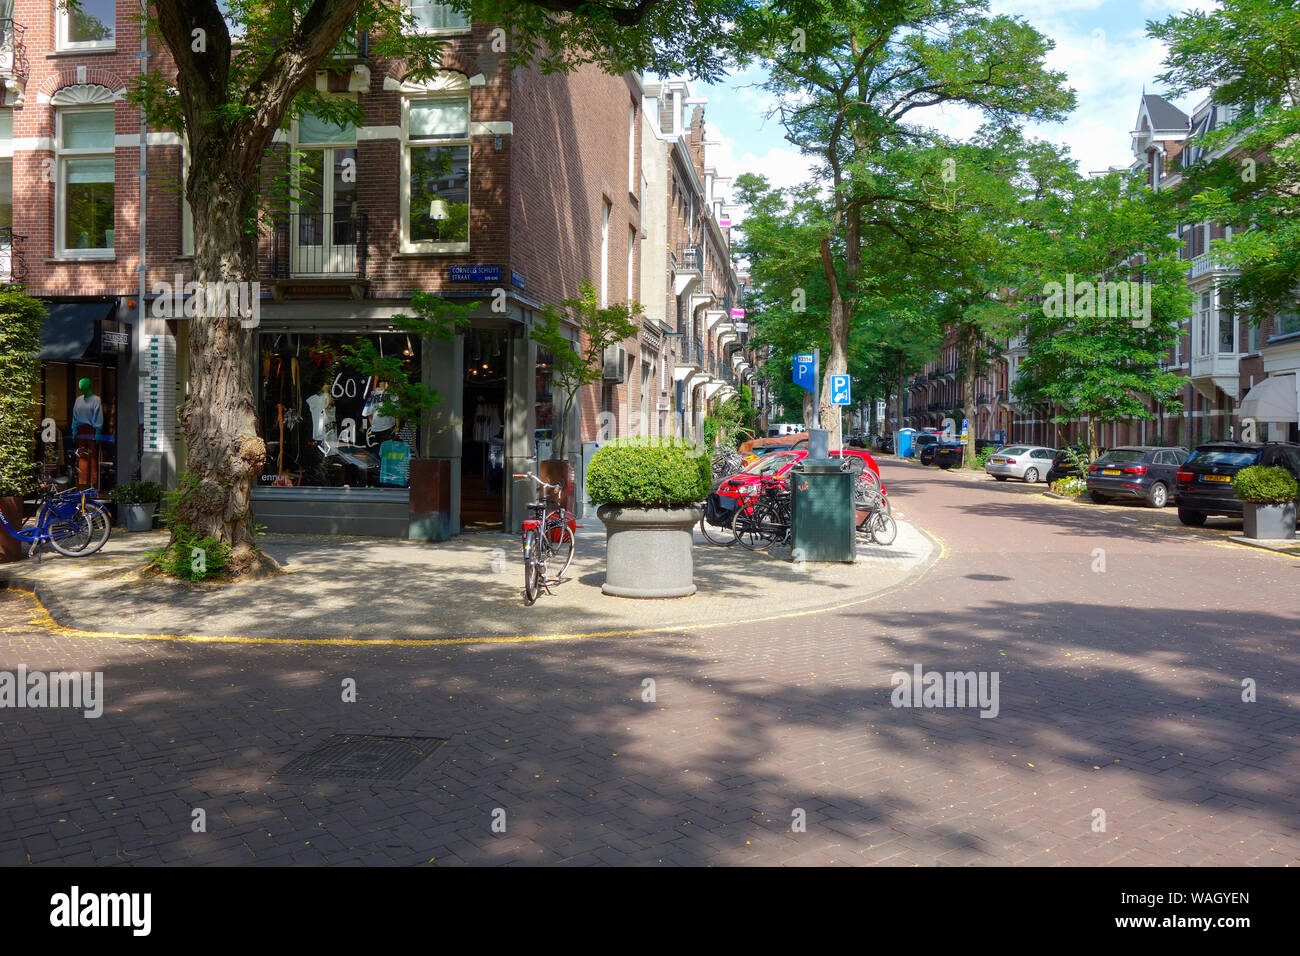 Cornelis Schuytstraat, Oud Zuid, Amsterdam, The Netherlands - home to a wide variety of cafés and restaurants, high-end boutiques and beauty stores. Stock Photo